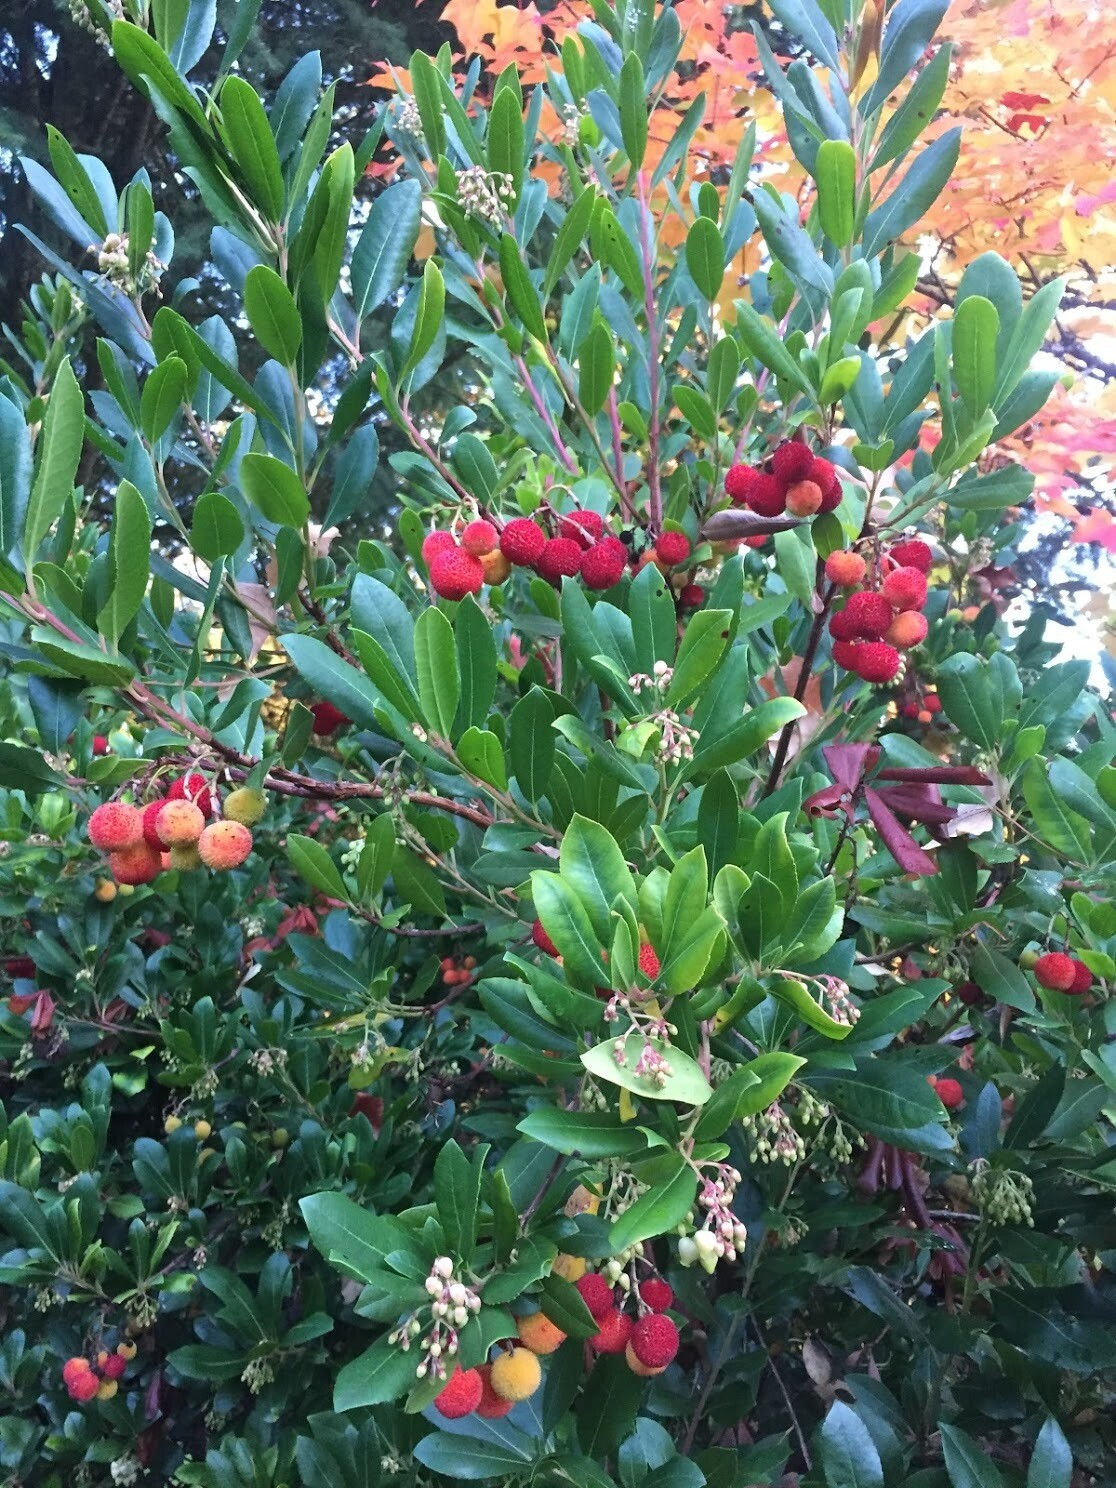 Arbutus unedo 'Compacta' - Strawberry Tree